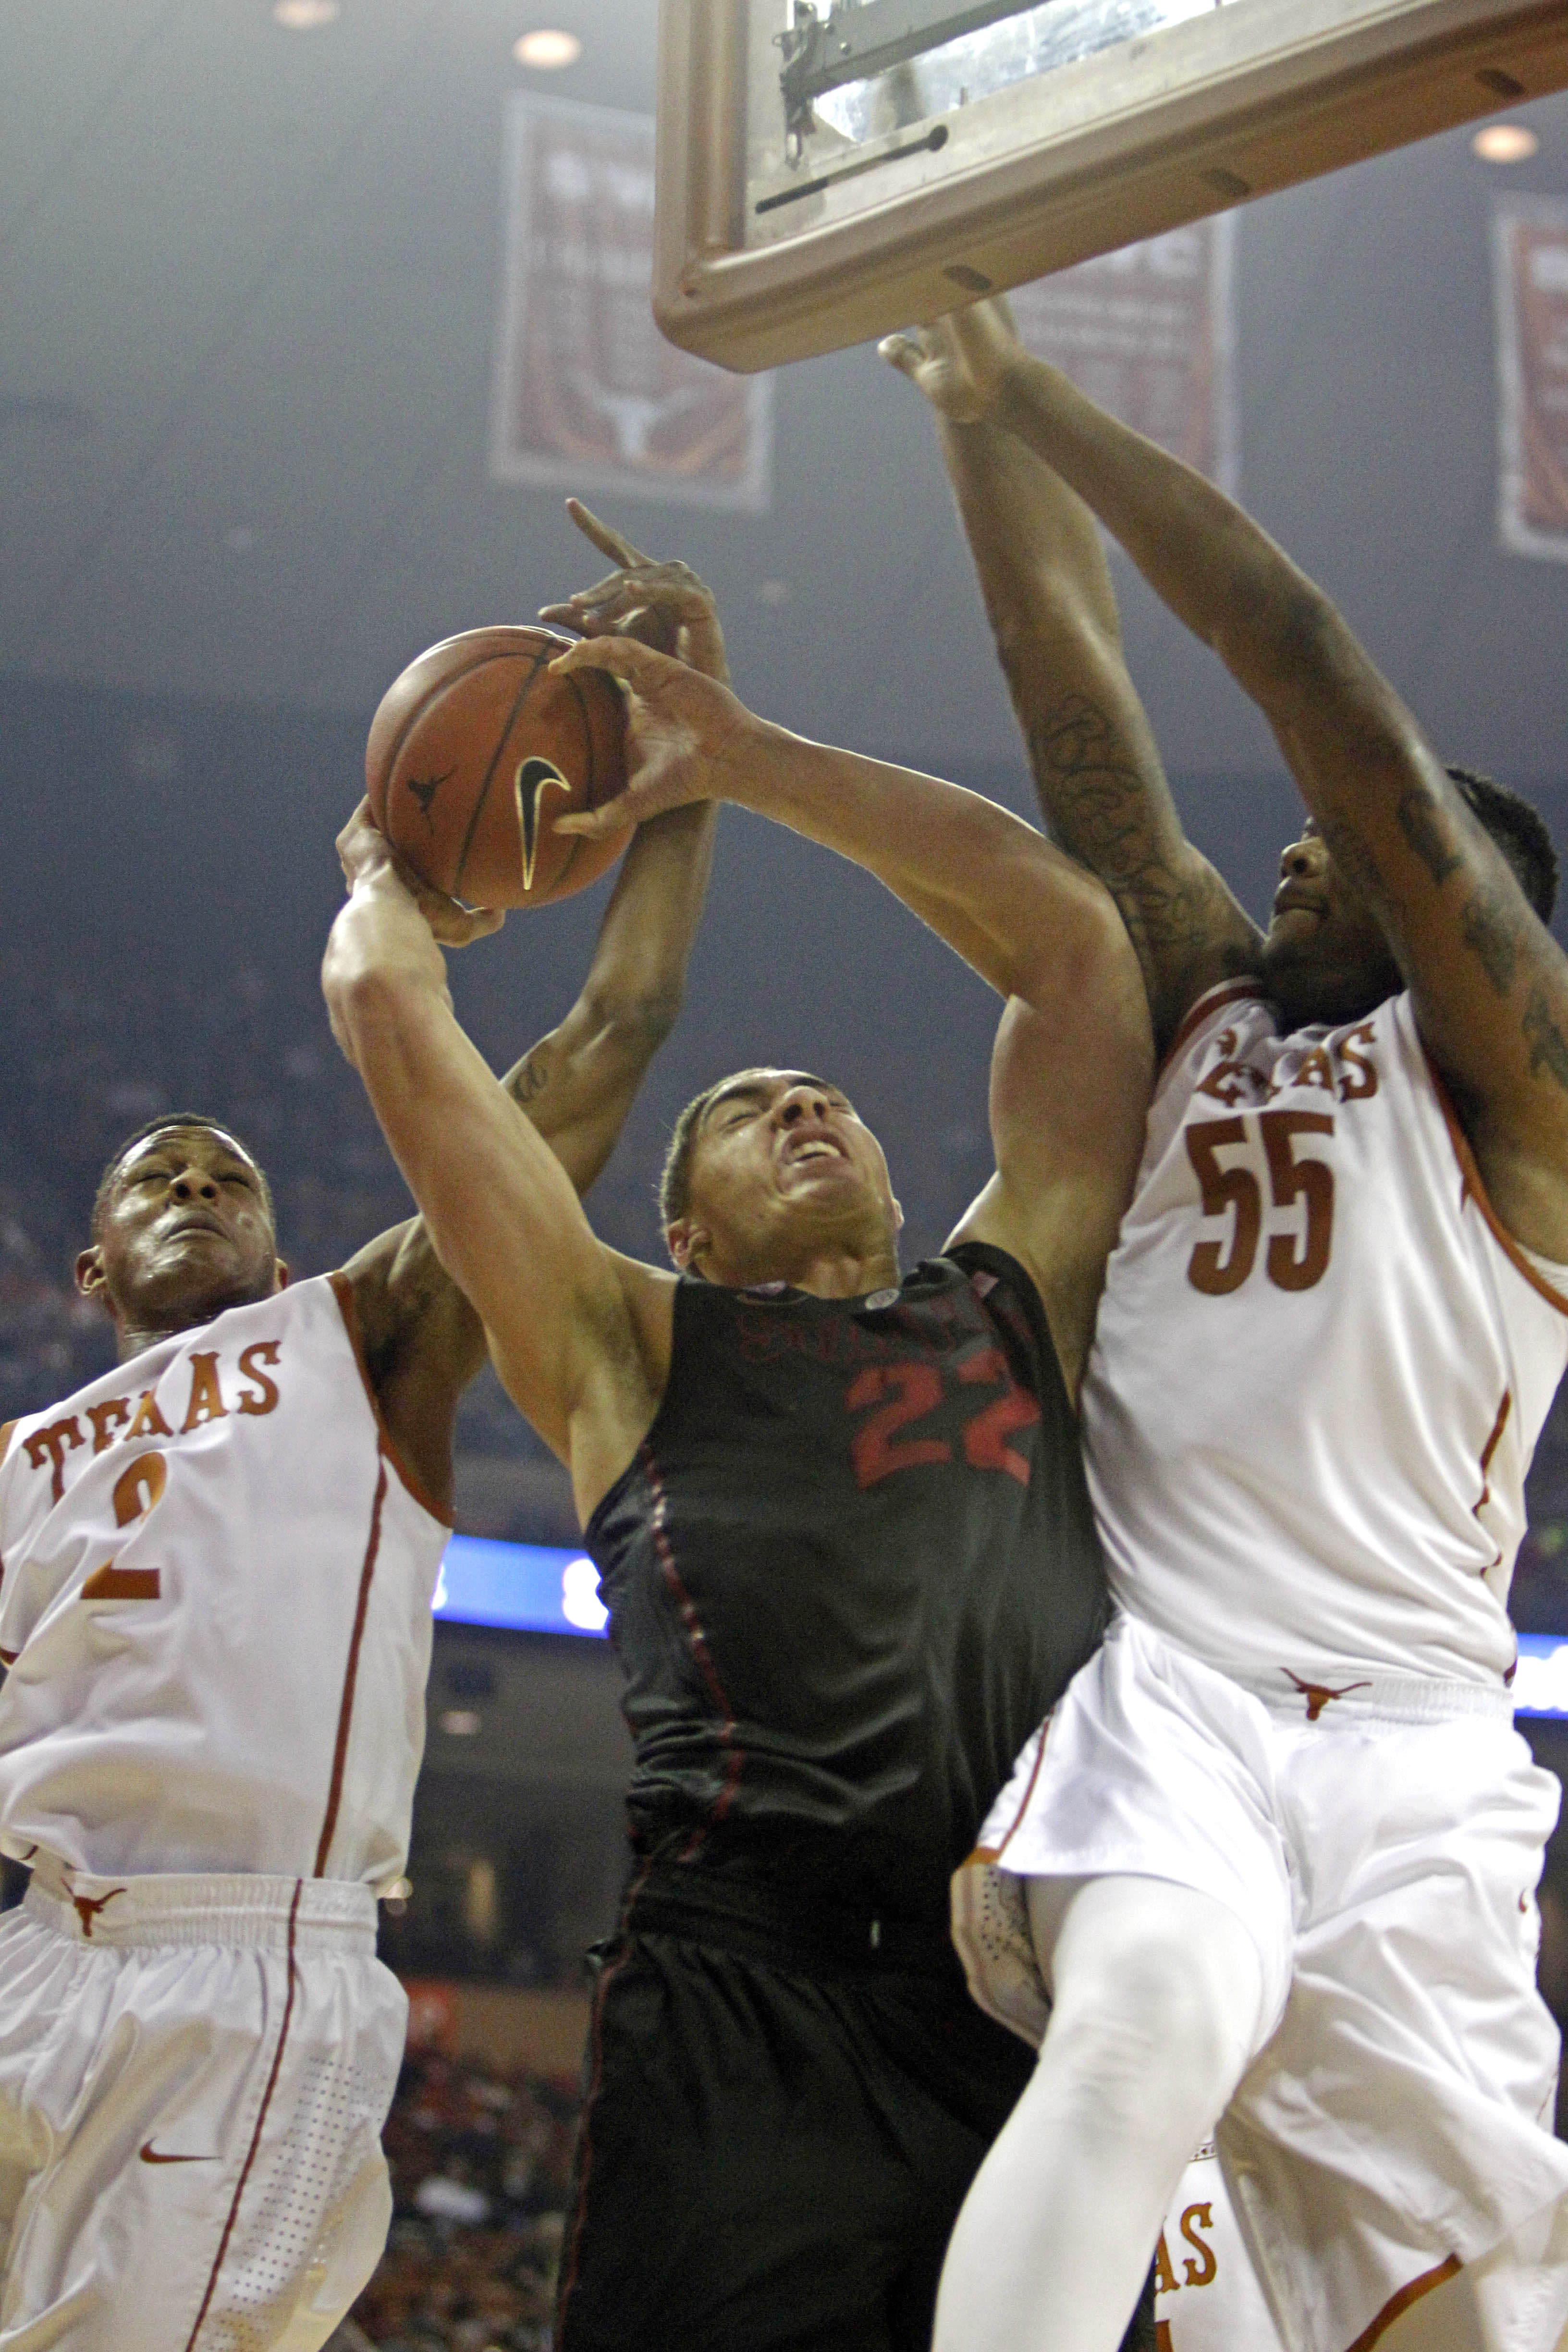 Stanford upsets No. 9 Texas in overtime 74-71